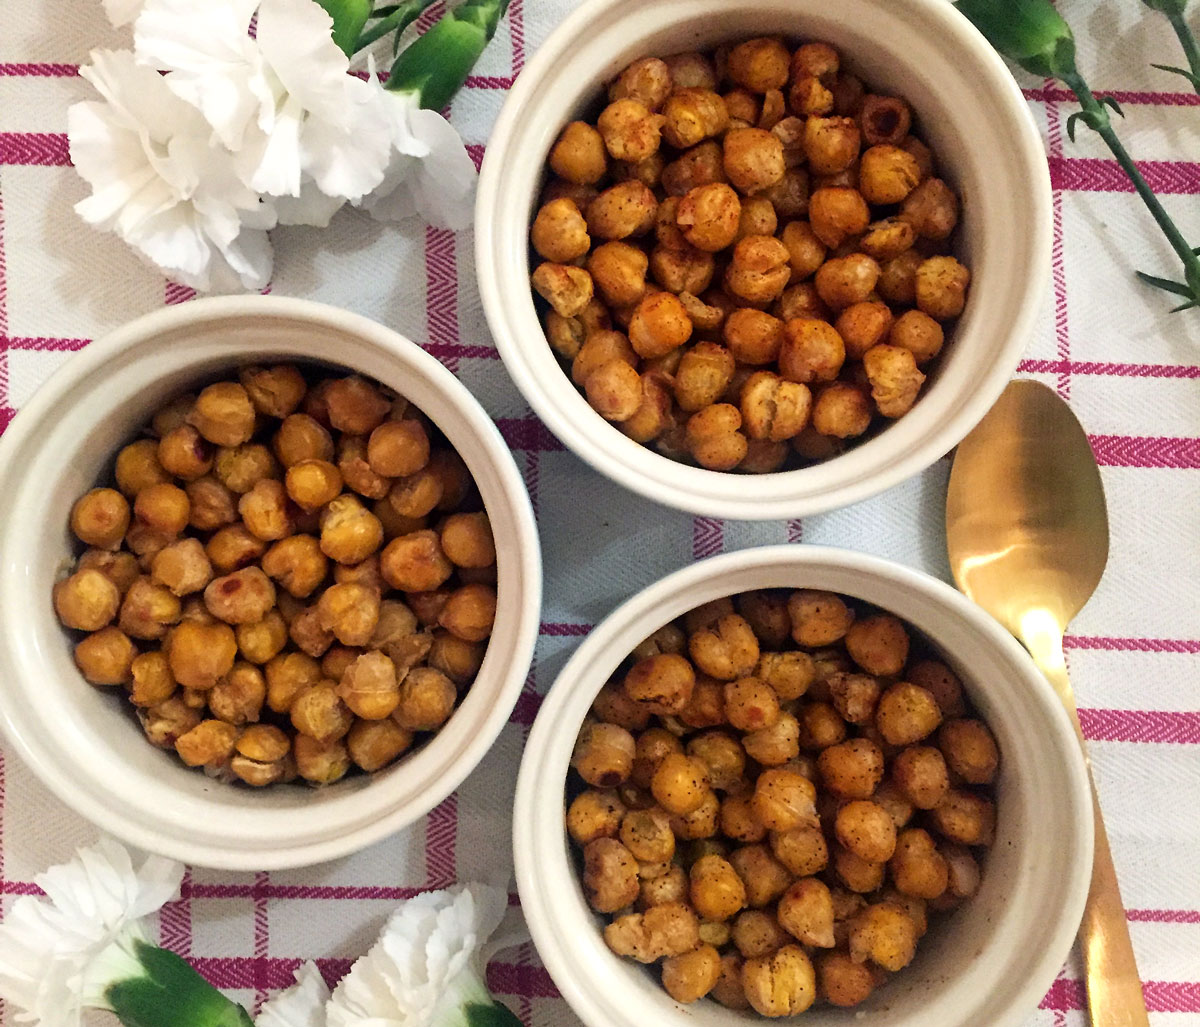 Three-Day-Vegan-Cleanse-Roasted-Chick-Peas-By-Bumble-and-Bustle